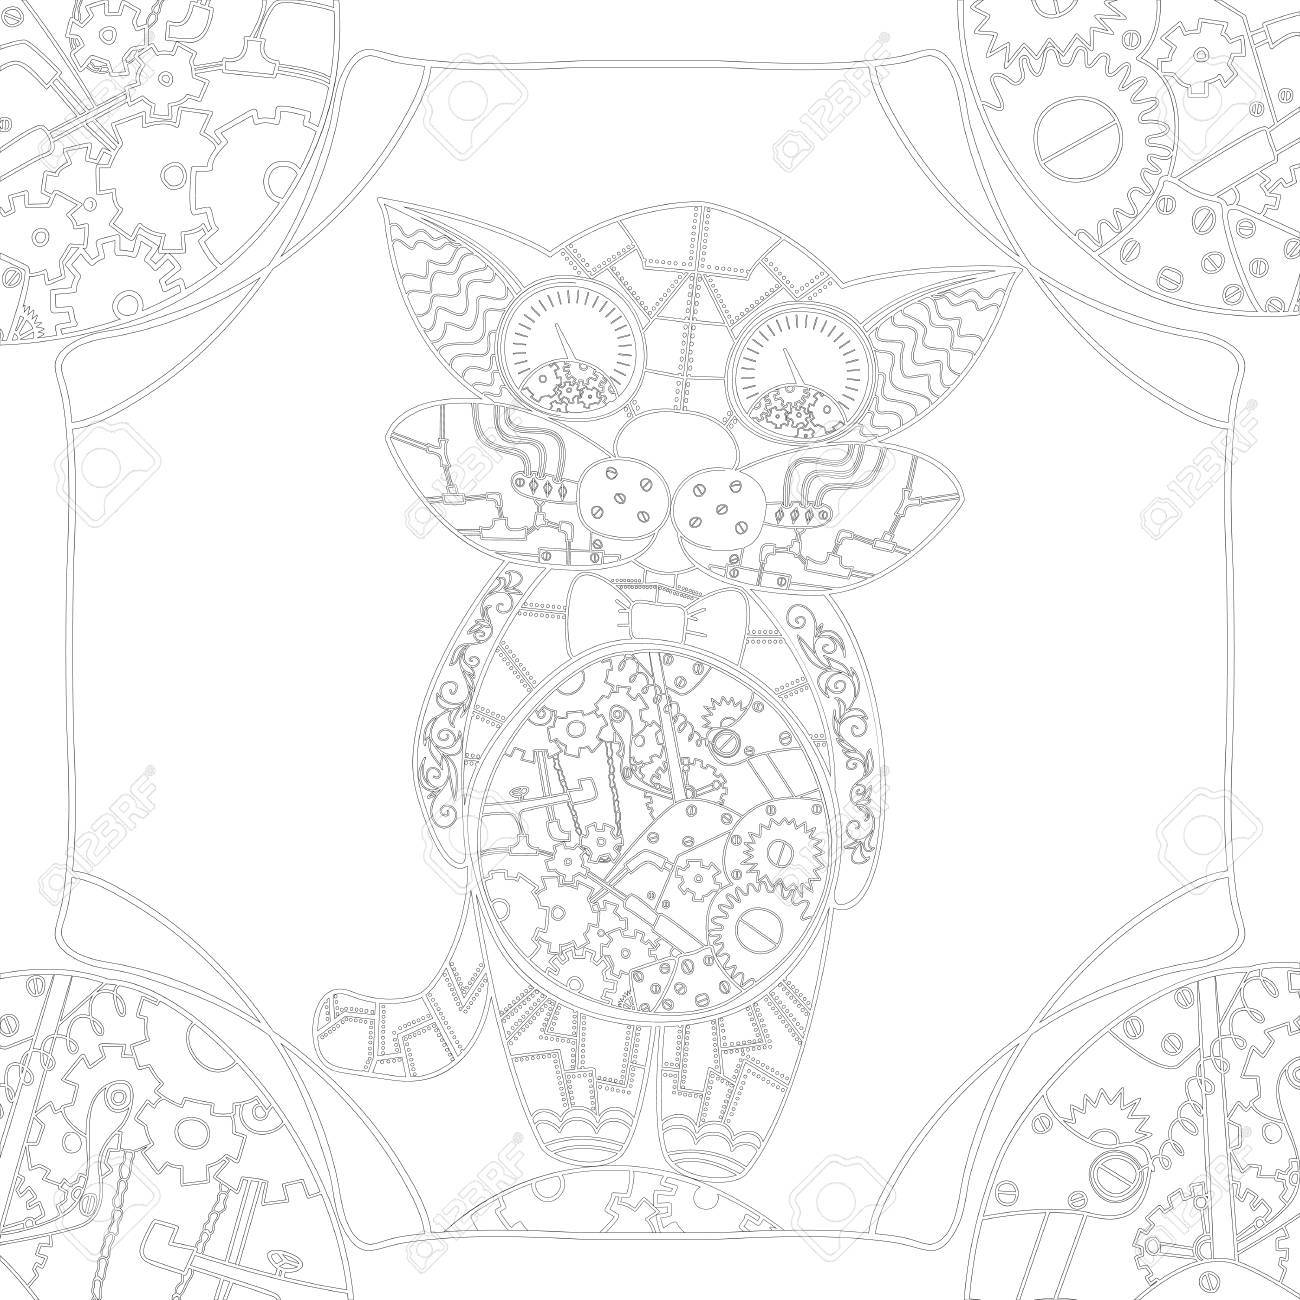 coloring book page with mechanical cat zentangle picture with very fine lines for older children and